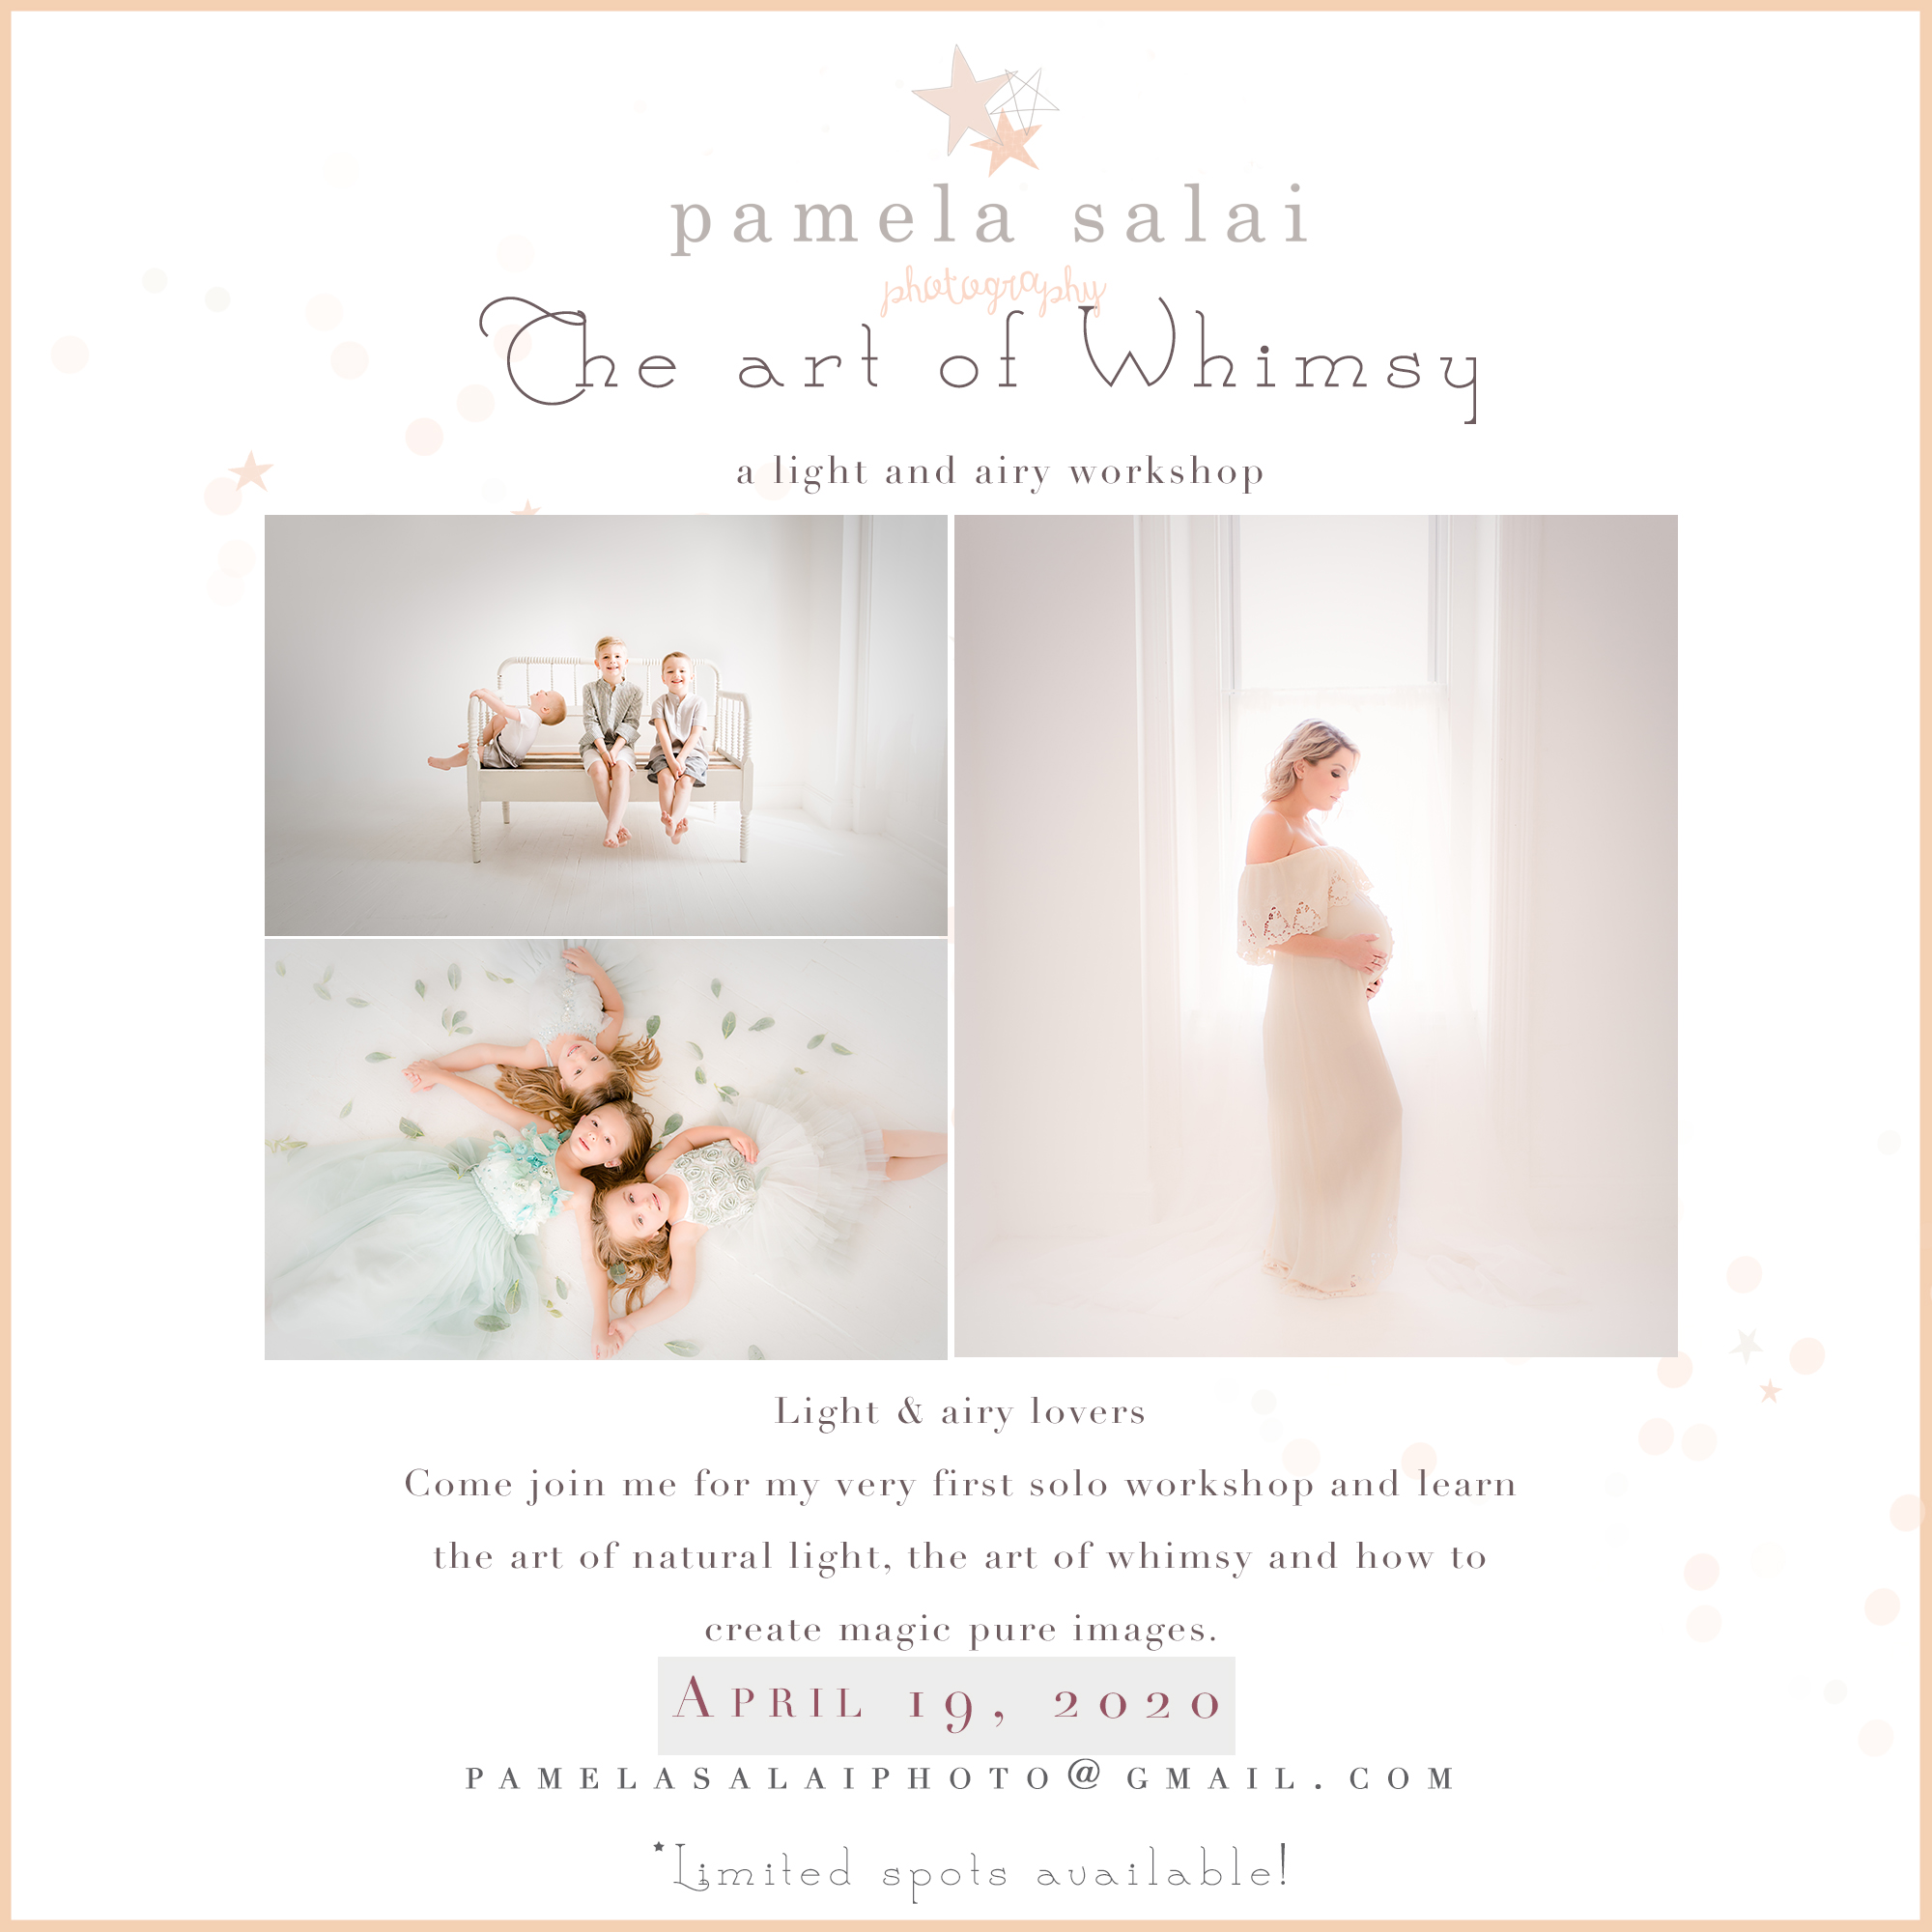 the art of whimsy workshop